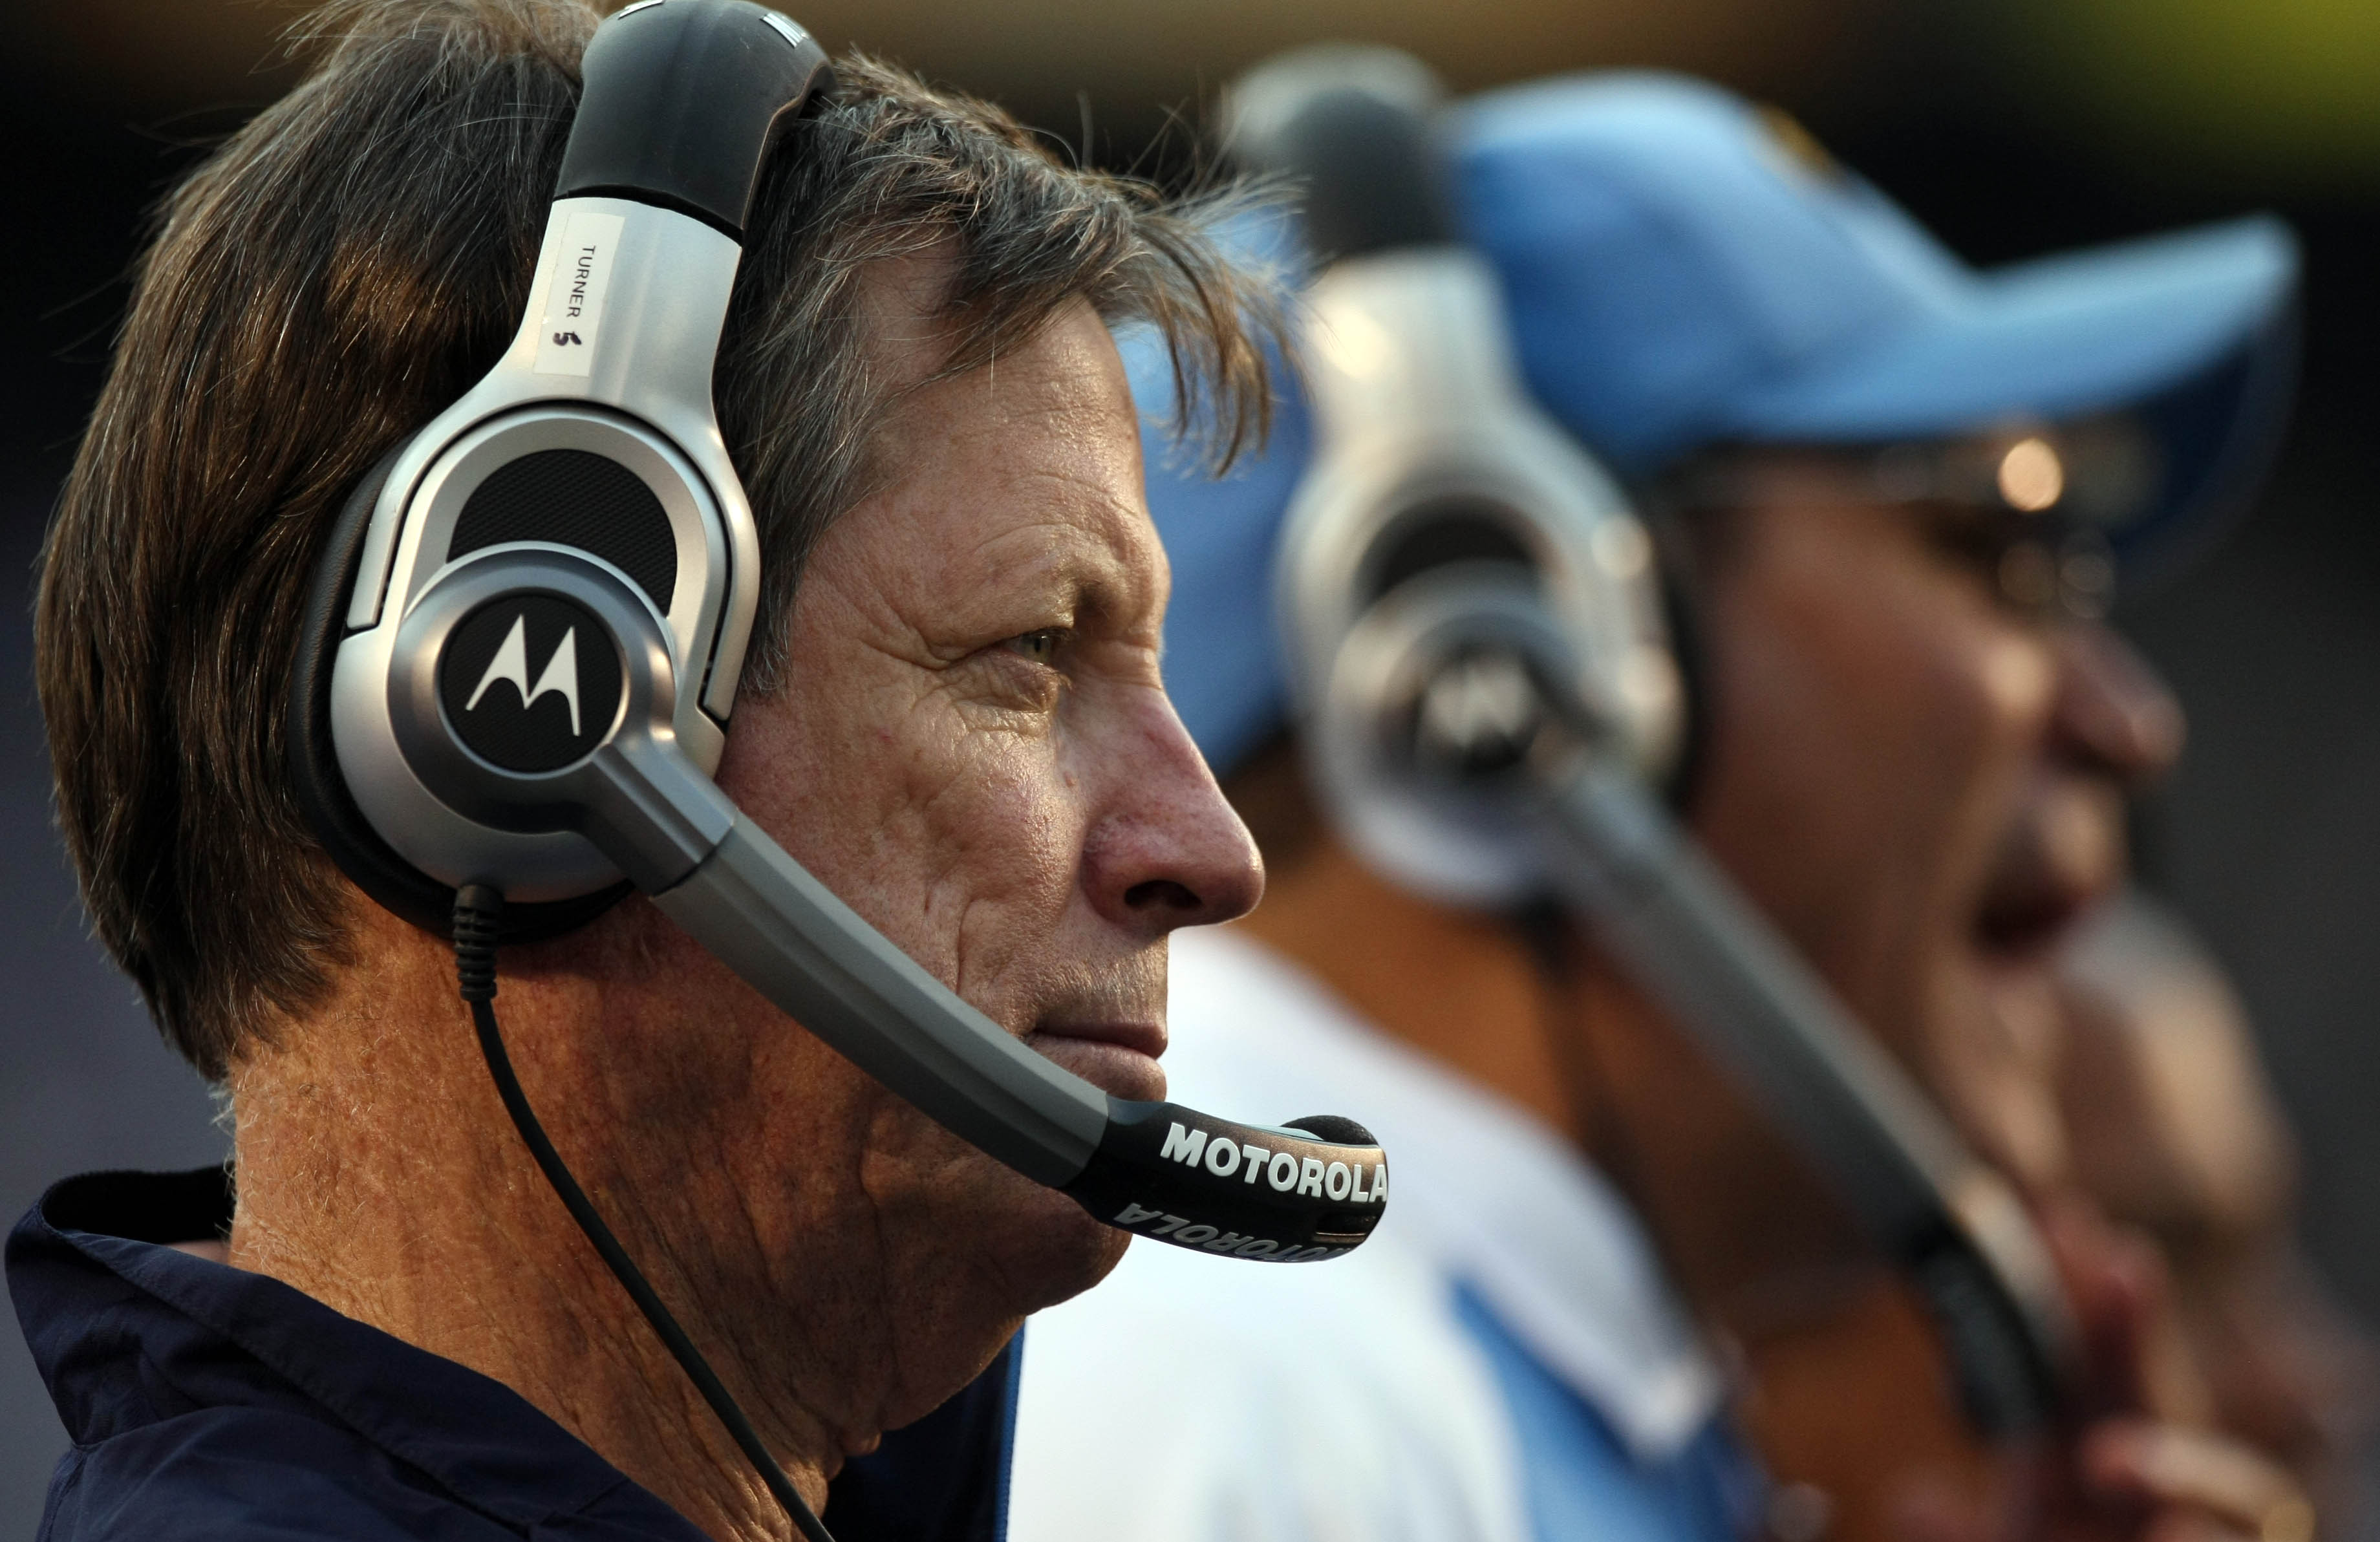 SAN DIEGO, CA - DECEMBER 5: Head Coach Norv Turner of the San Diego Chargers looks on from the sidelines against the Oakland Raiders during their NFL game at Qualcomm Stadium on December 5, 2010 in San Diego, California. (Photo by Donald Miralle/Getty Ima